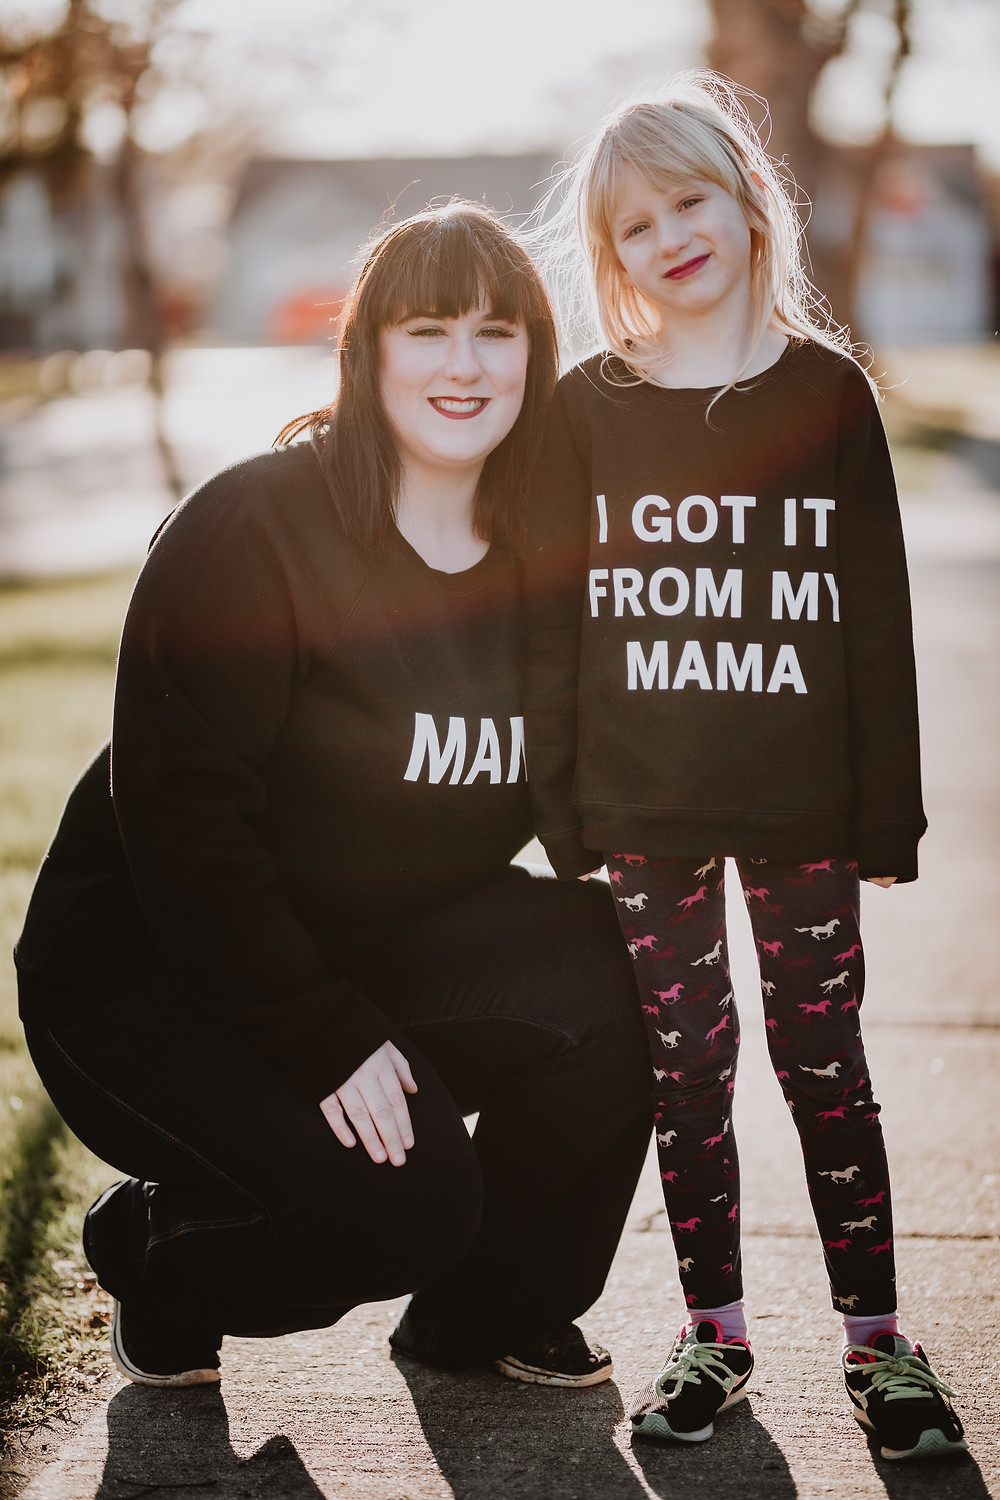 Mama and me photoshoot in Winnipeg, Manitoba.